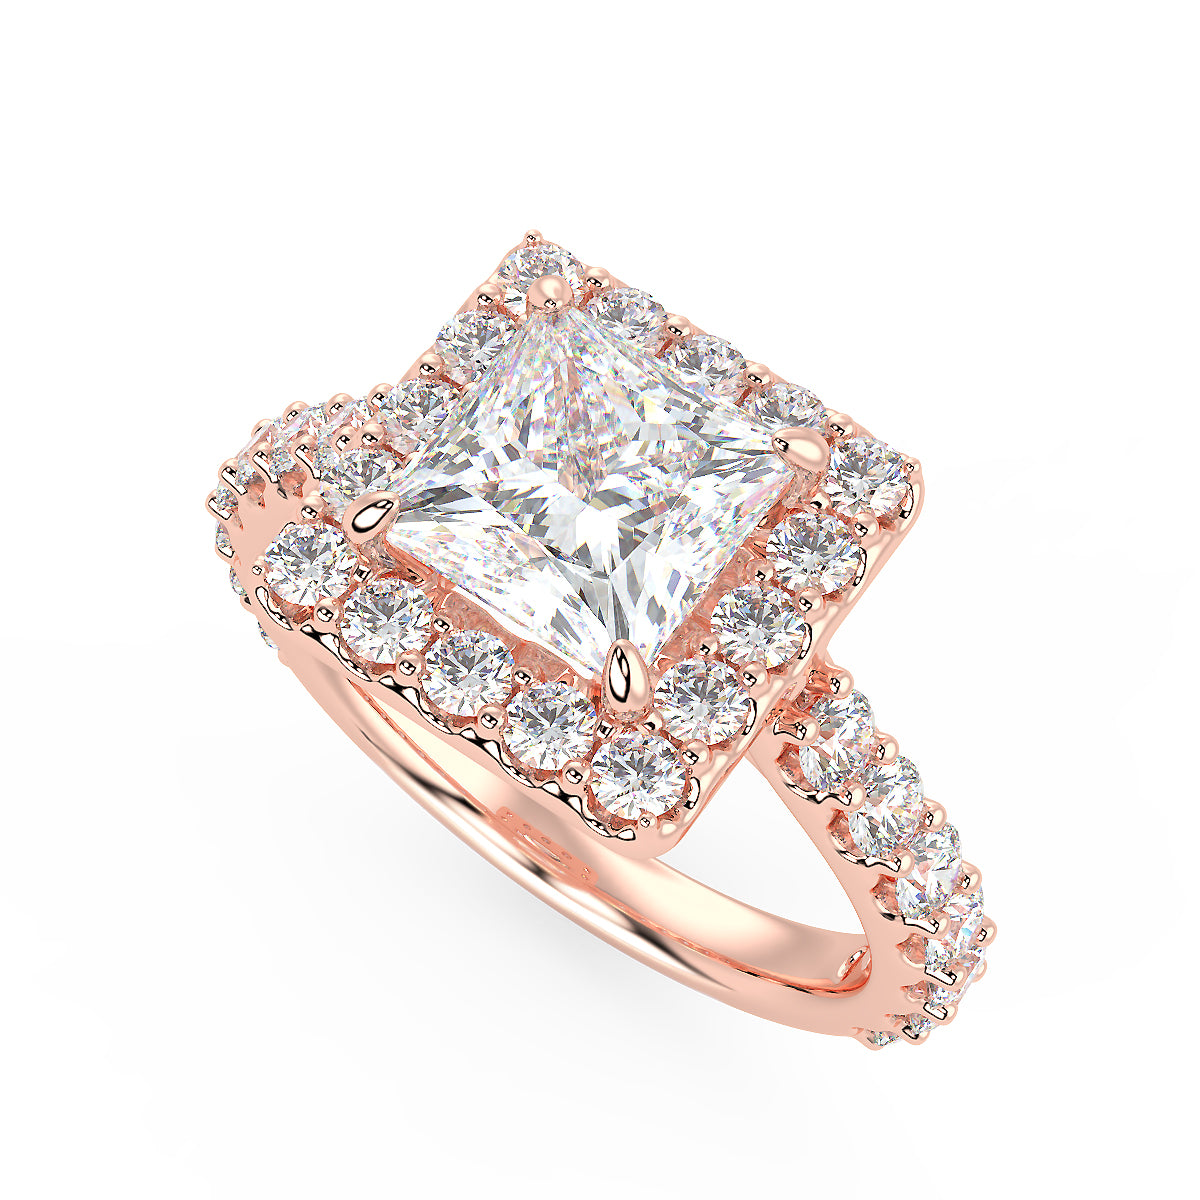 Pegasus Engagement Ring in Rose Gold